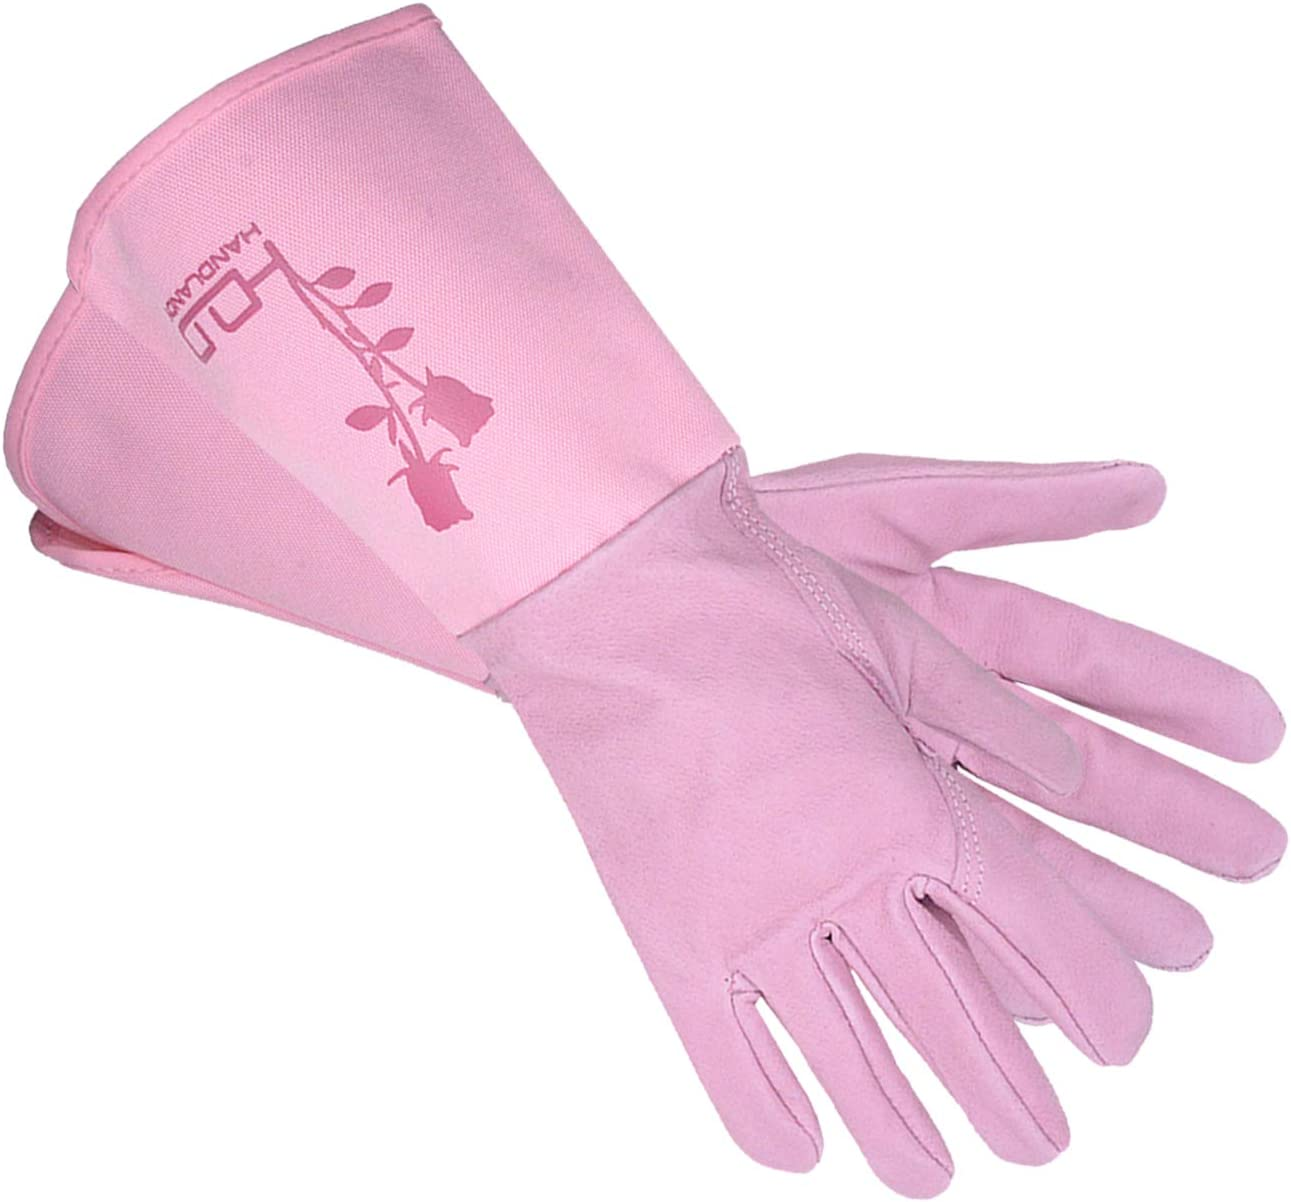 Professional Gardening Gloves Rose Pruning Gloves for Women with Durable Thick Piskin and Thorn & Cut Proof with Long Forearm Protection (M, Pink)